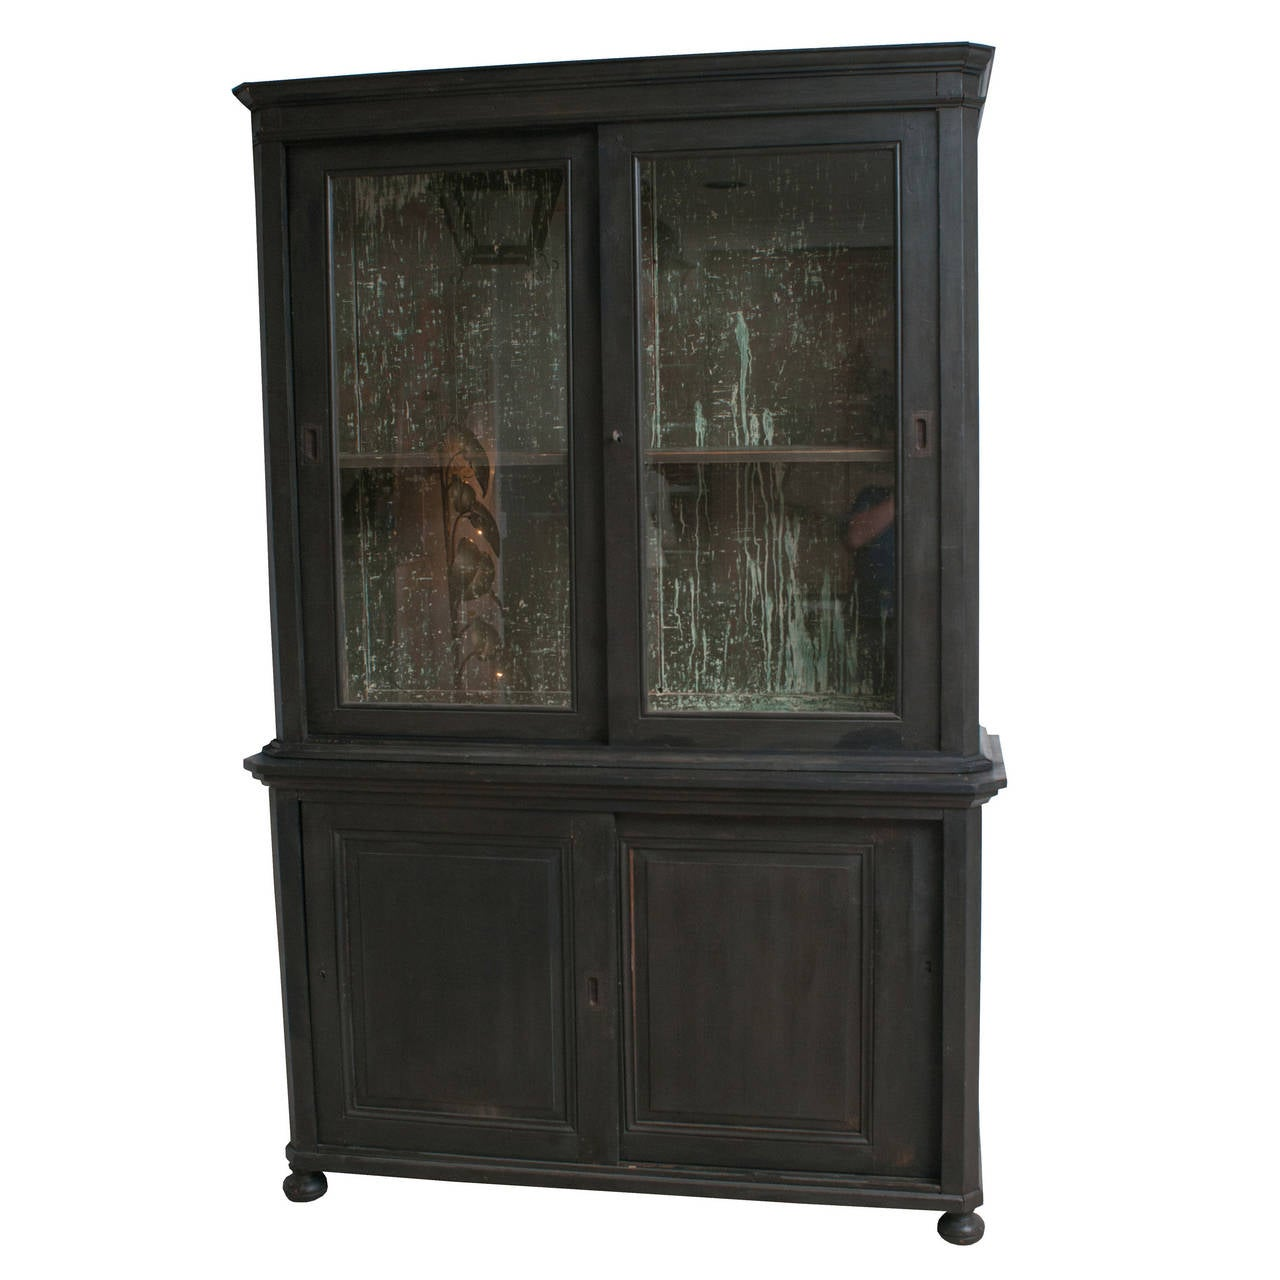 A Black Painted Napoleon III Glass Front Bookcase. 1 - A Black Painted Napoleon III Glass Front Bookcase. At 1stdibs